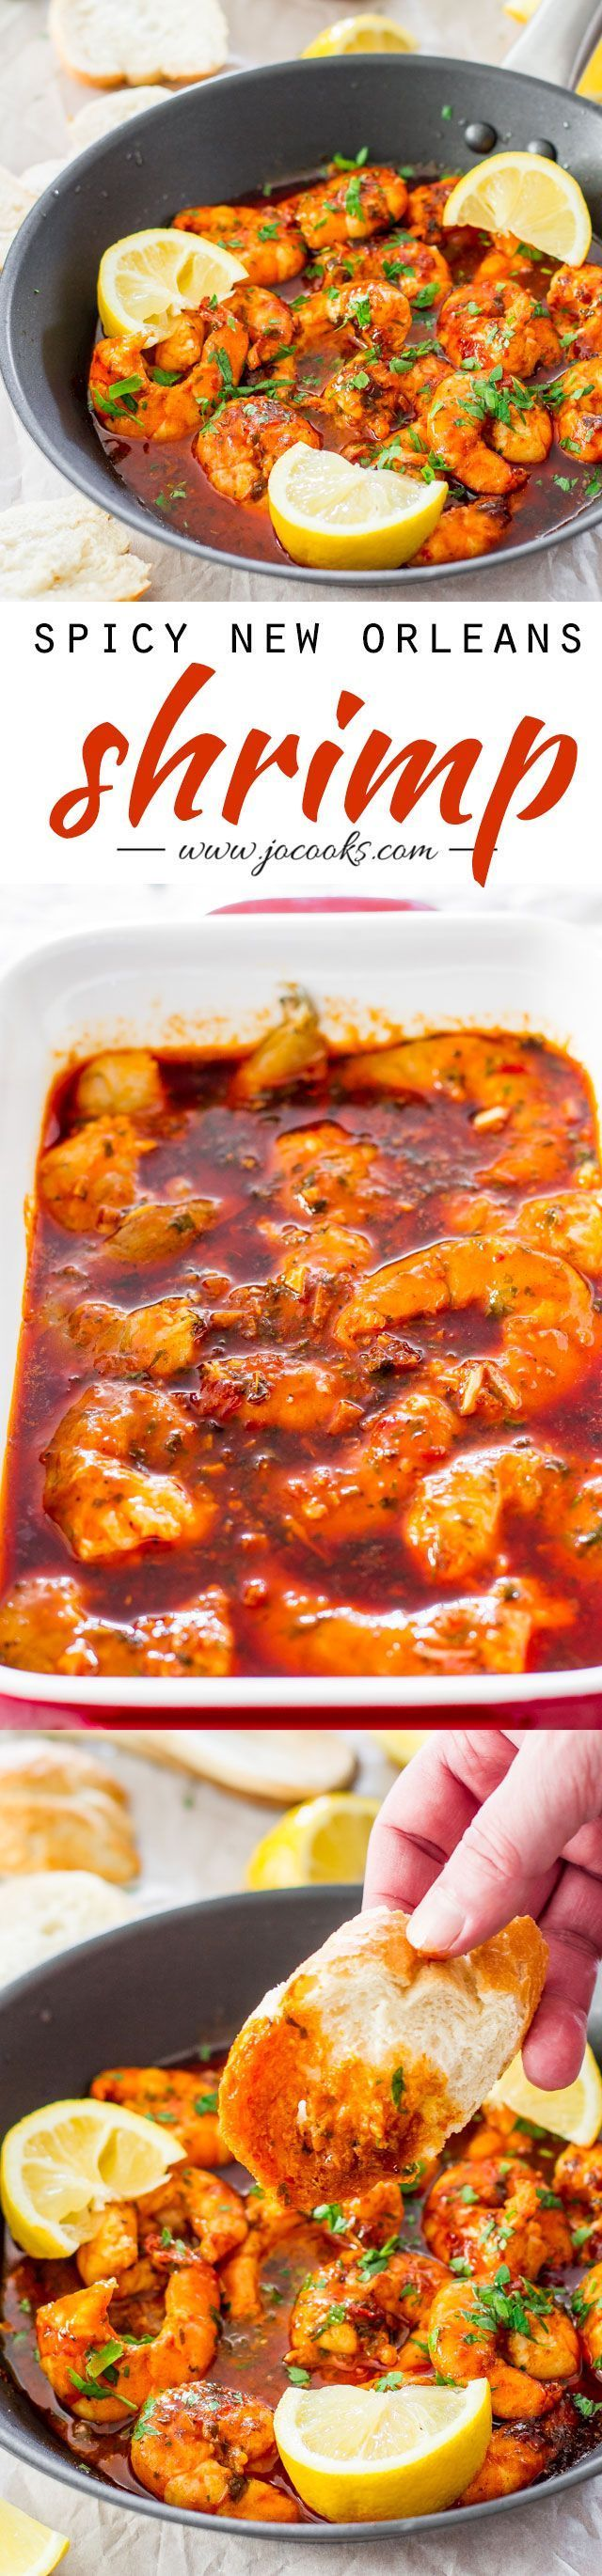 Spicy New Orleans Shrimp | These shrimp are hot, spicy, decadent, bold and super delicious, just the thing to satisfy your cravings!. Serves: 2